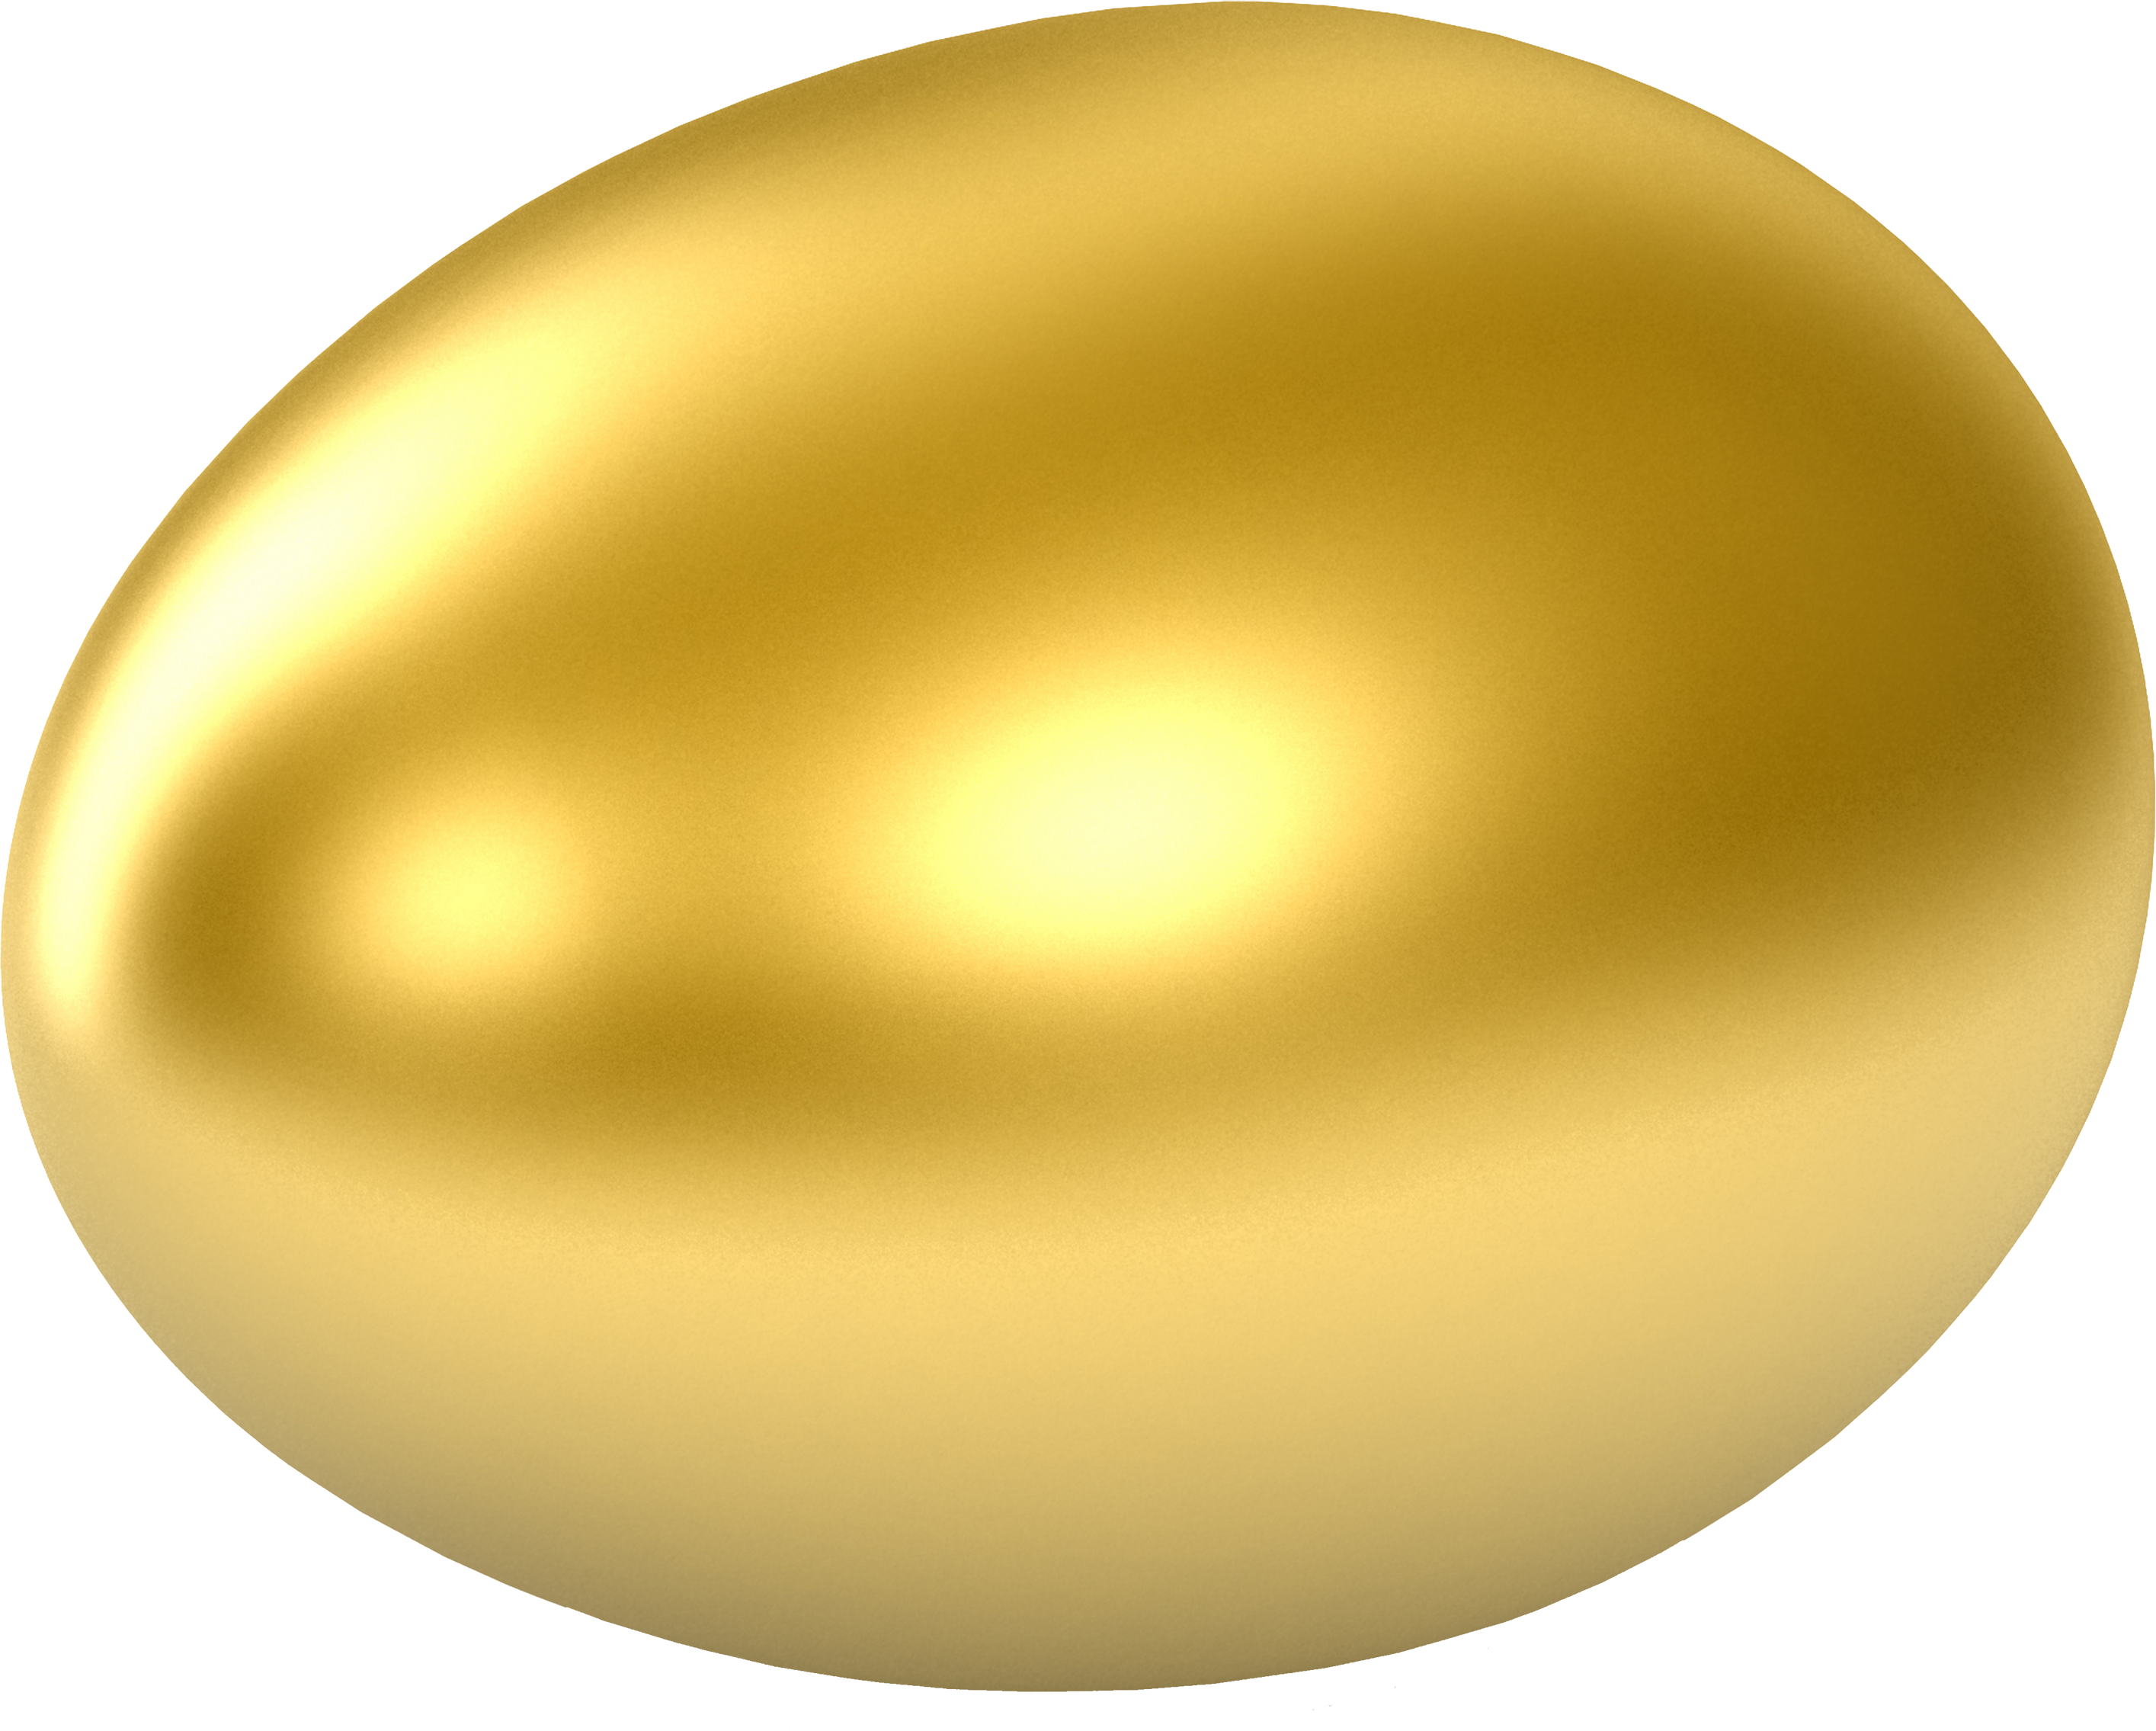 Gold egg PNG image - Egg HD PNG